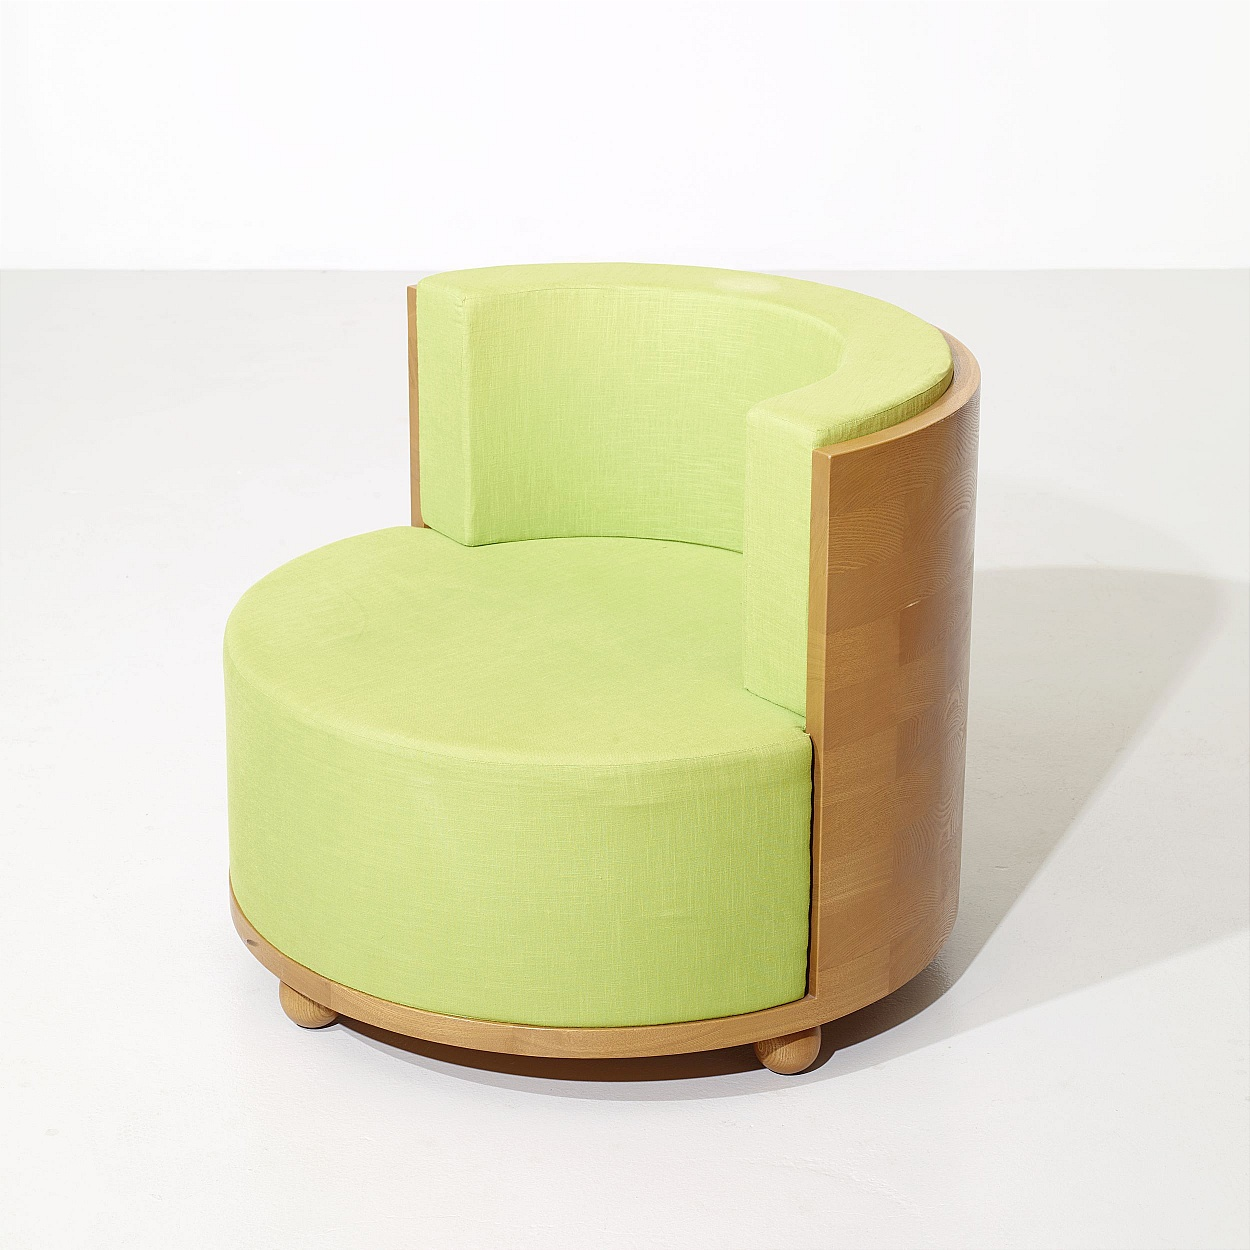 "Ernst Billgren ""Von Törne"" easy chair"